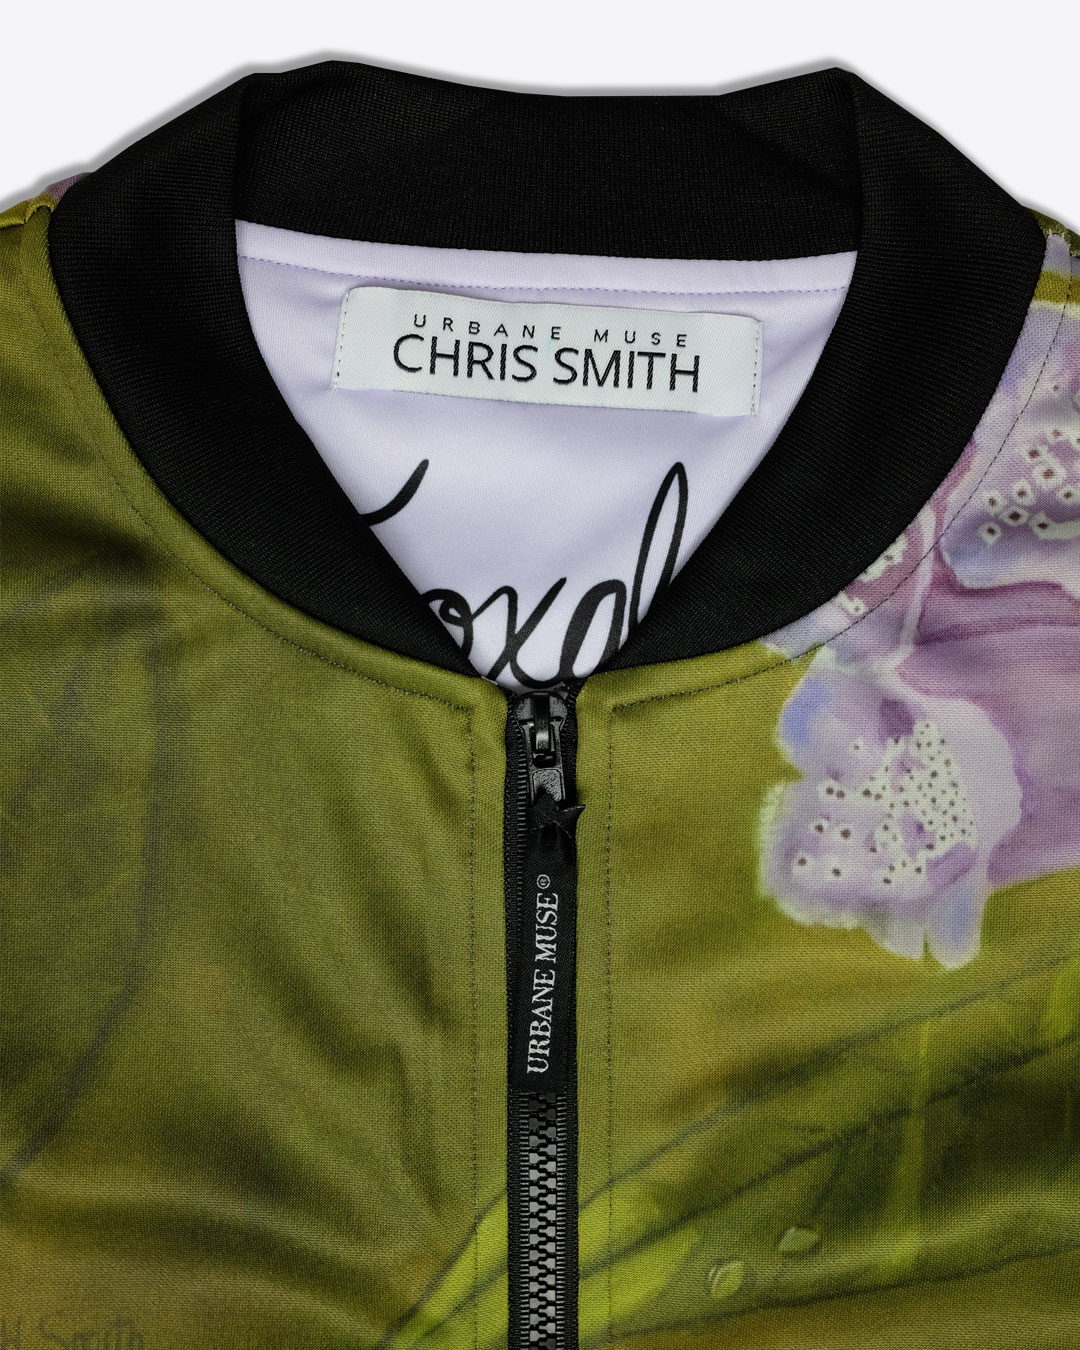 FOXGLOVE-photo3-URBANE-MUSE-CHRIS-SMITH-BOMBER-JACKET-with-Lining